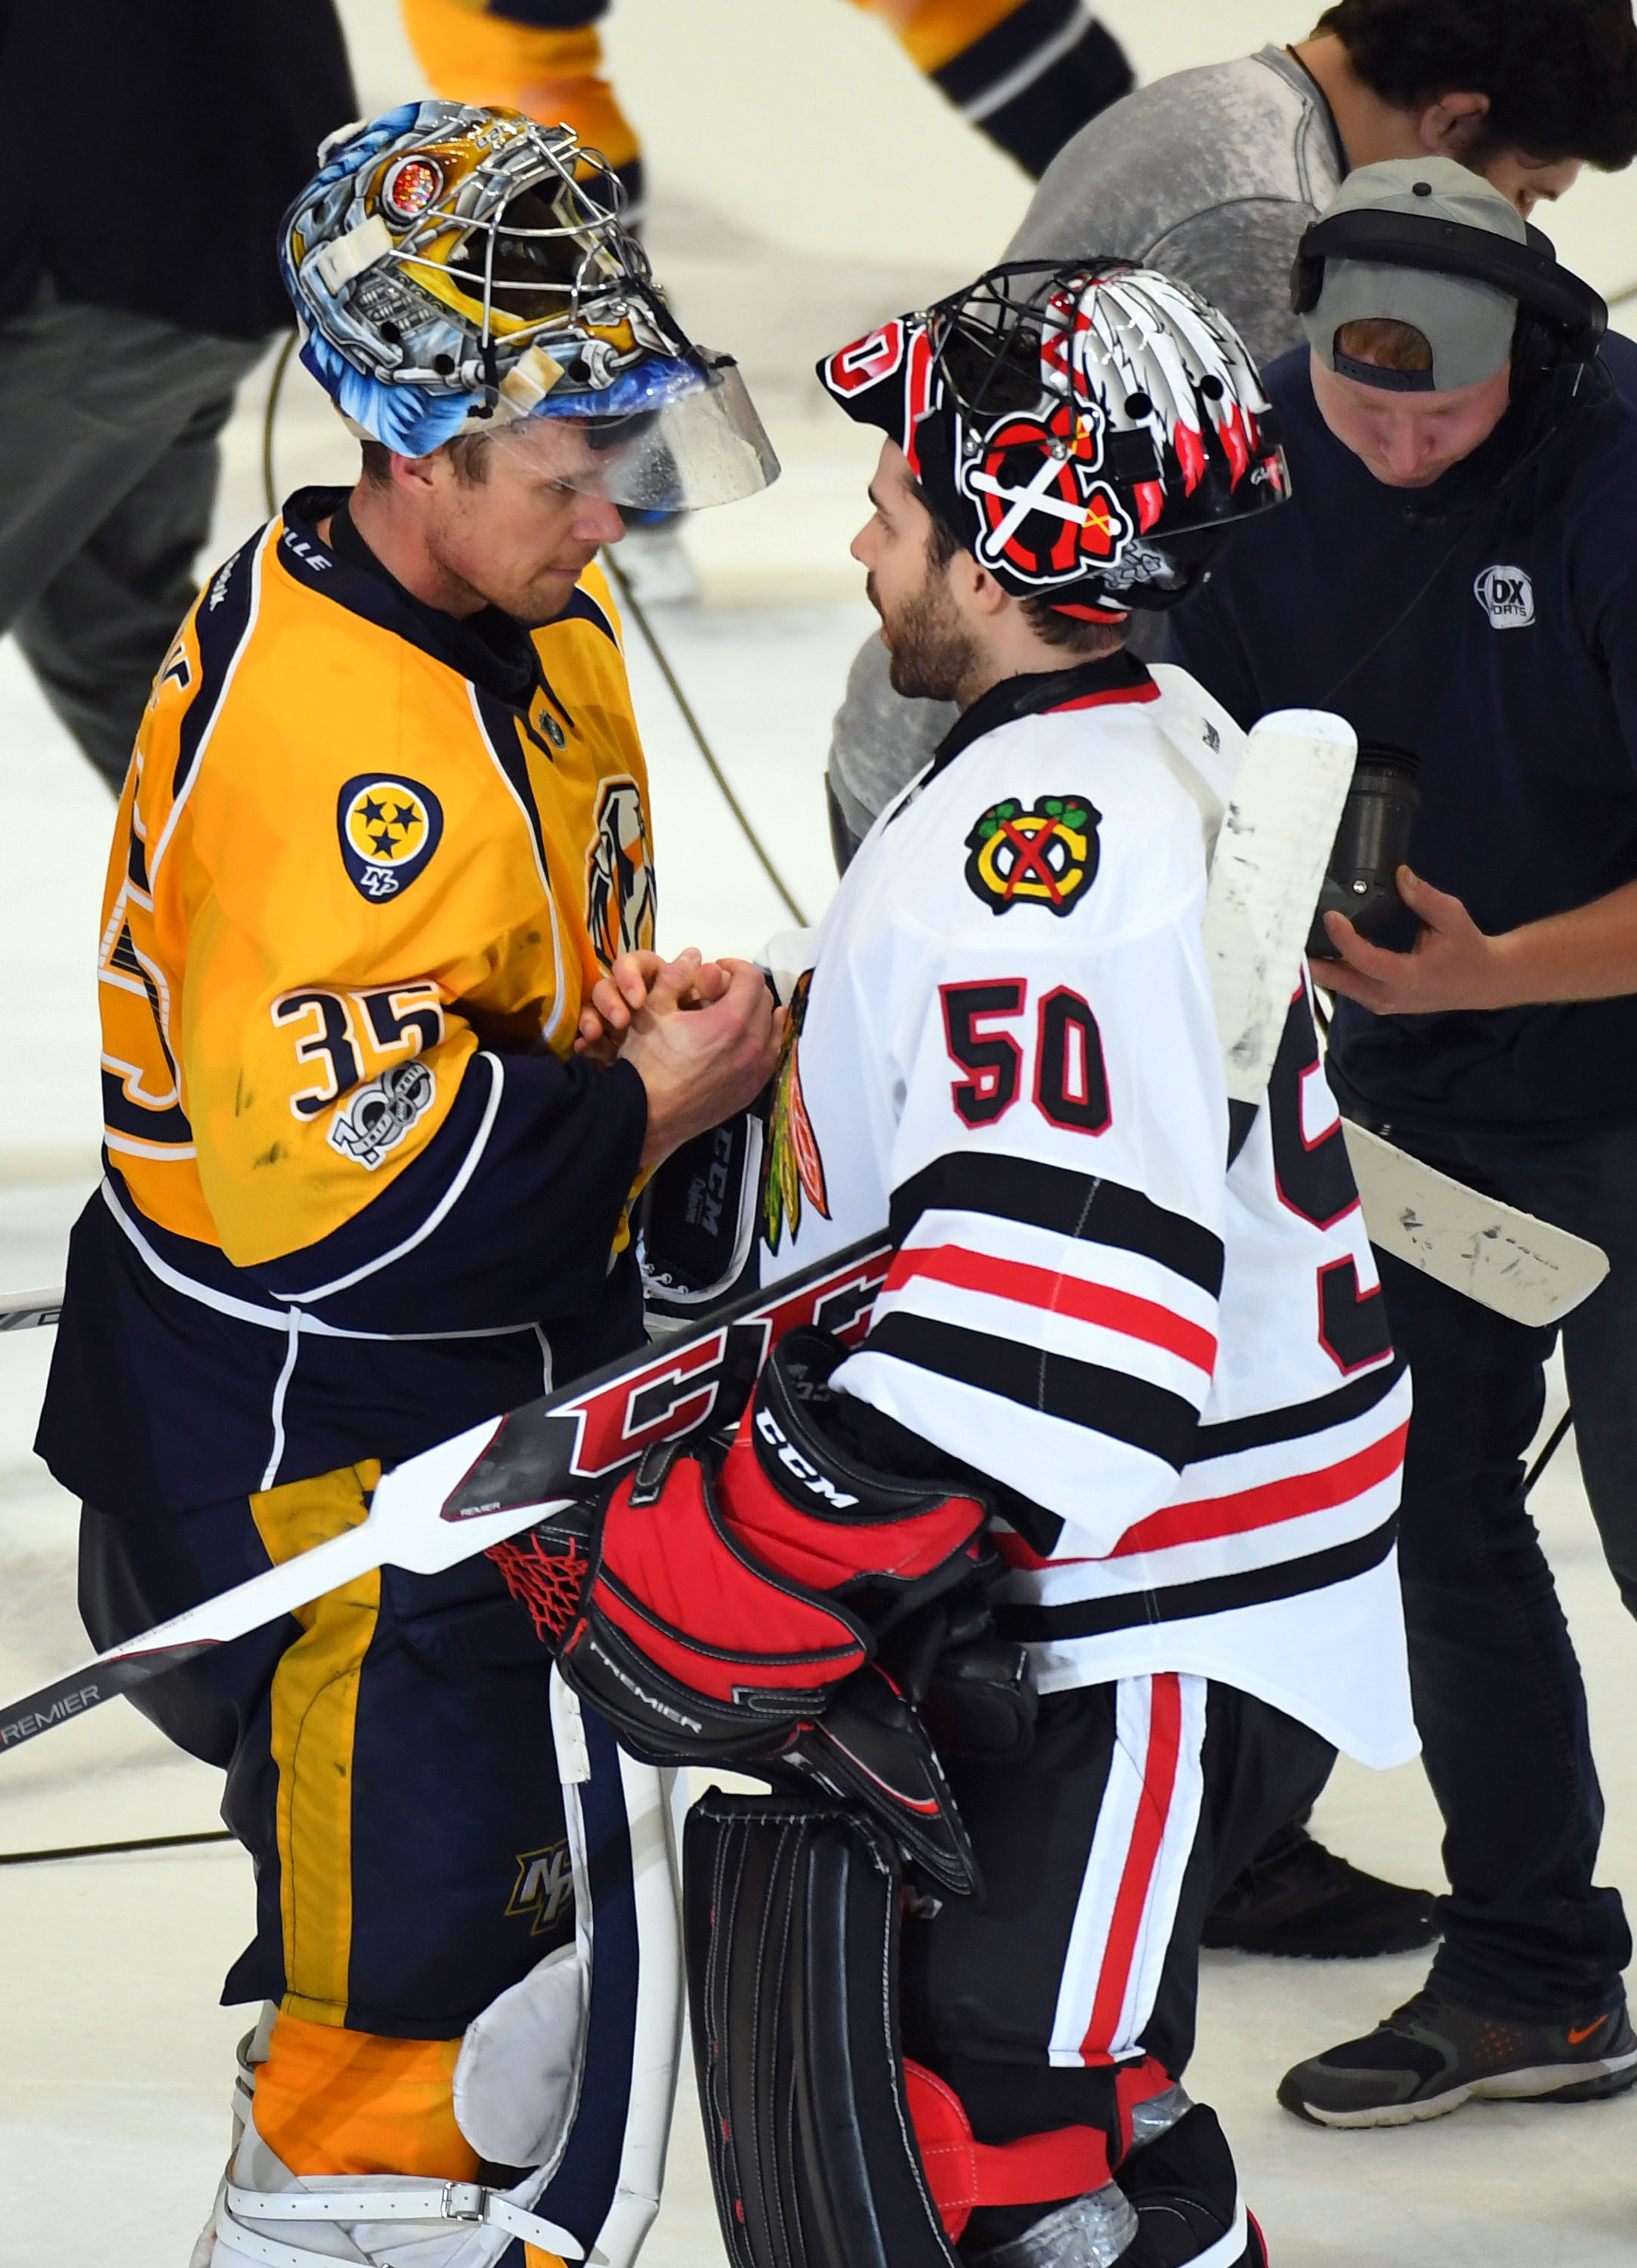 10022830-nhl-stanley-cup-playoffs-chicago-blackhawks-at-nashville-predators